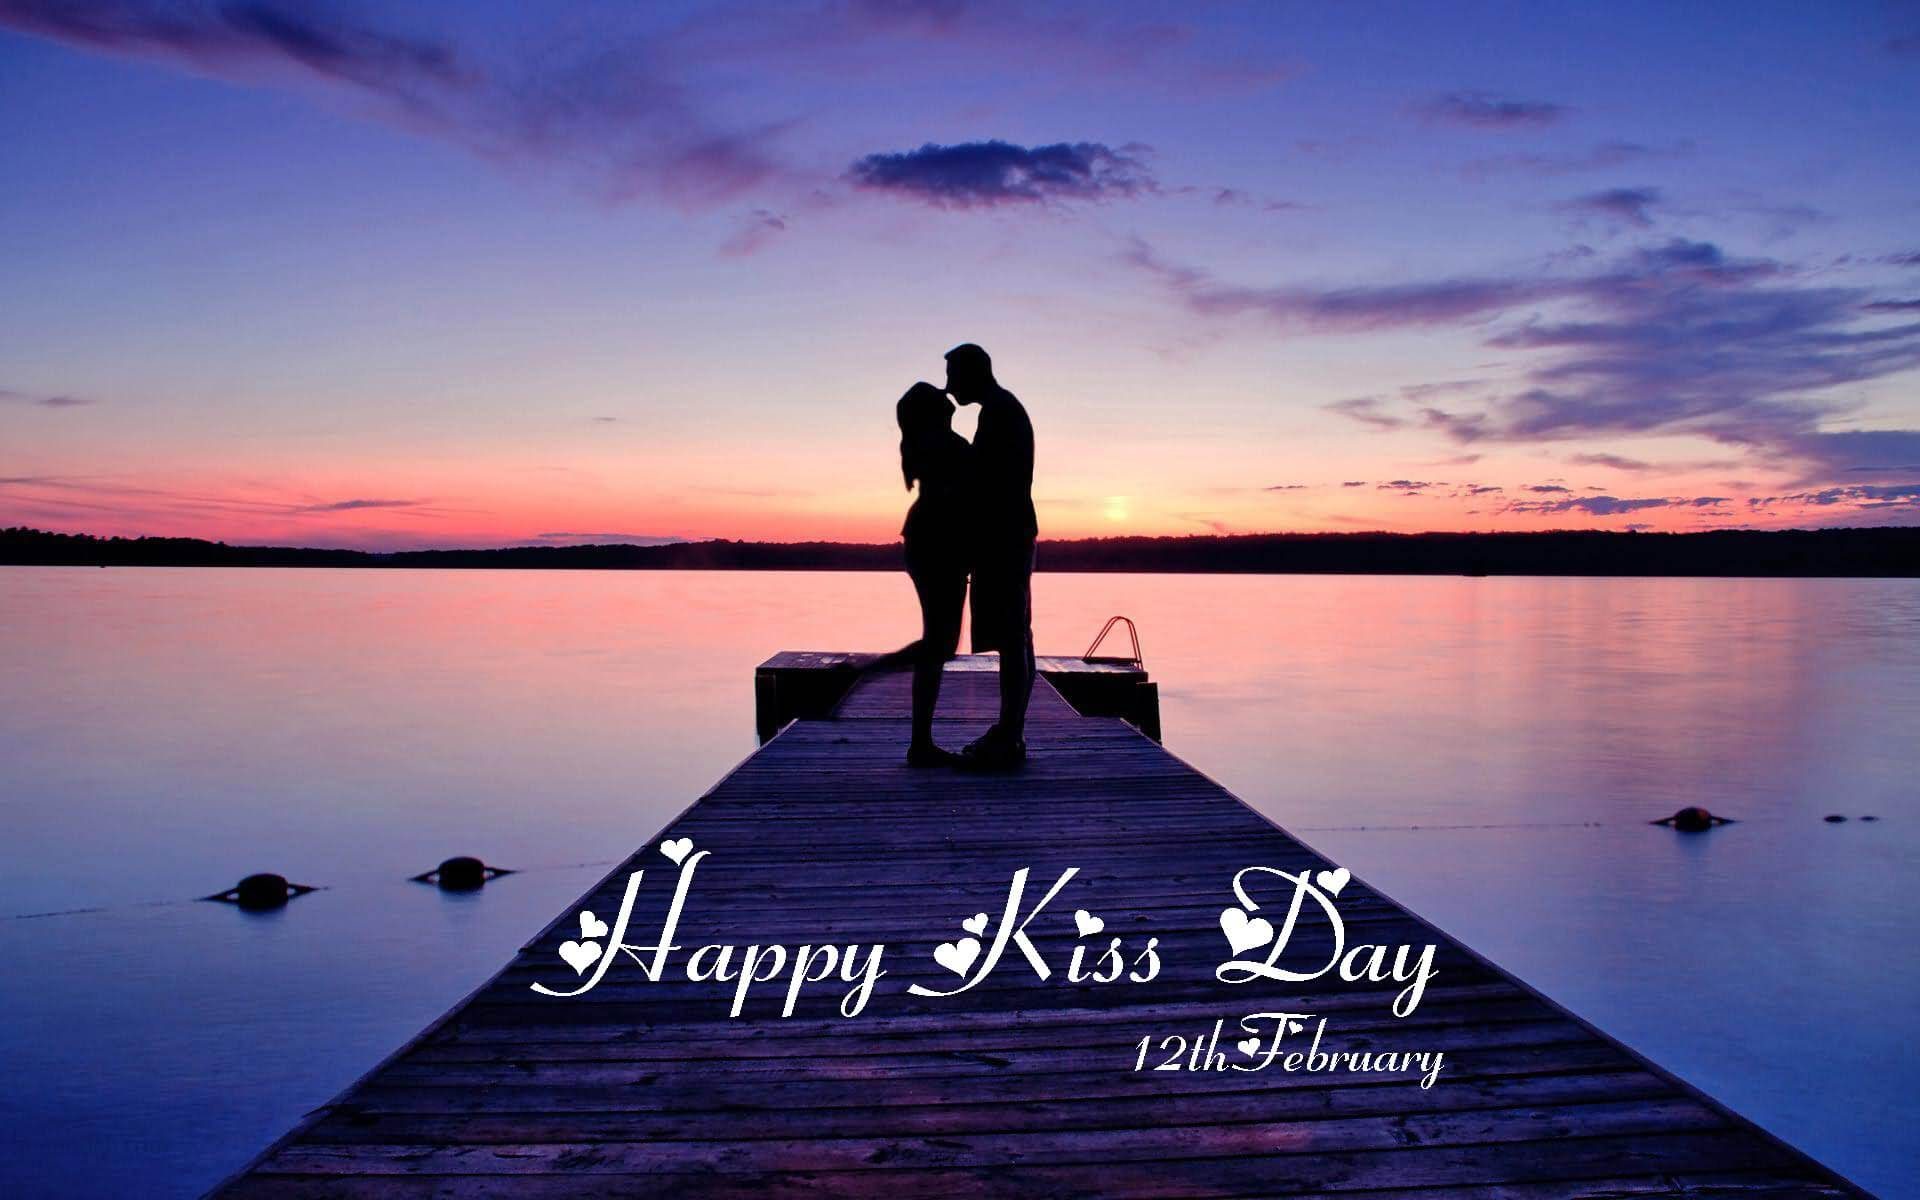 happy kiss day wishes love romantic couples 12th february picture hd wallpaper